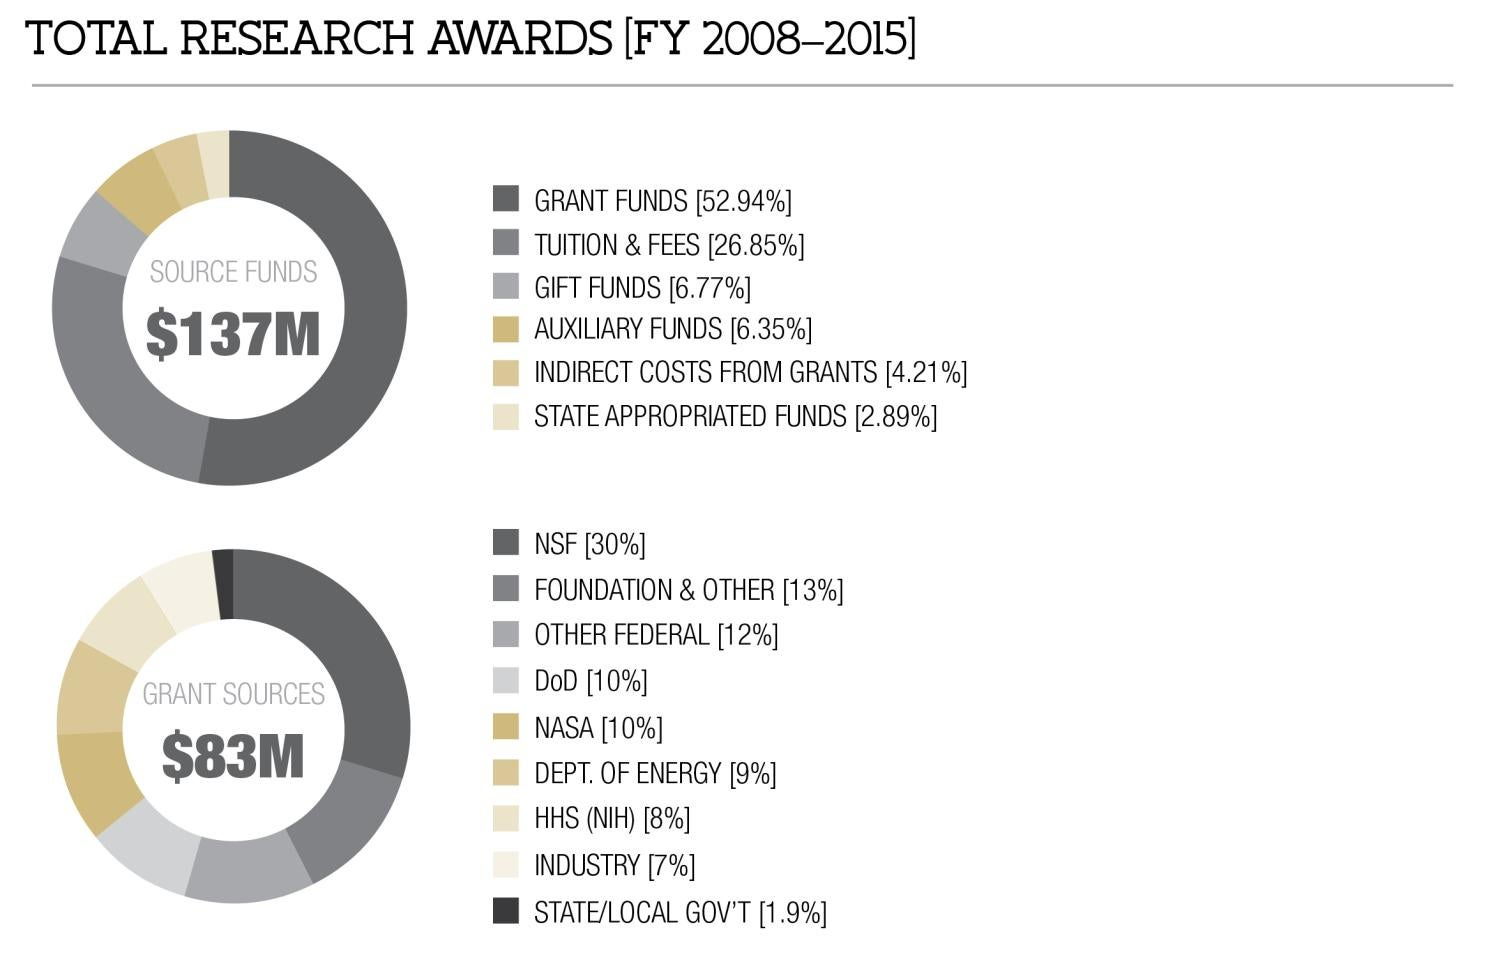 Total Research Awards [FY 2008-2015]